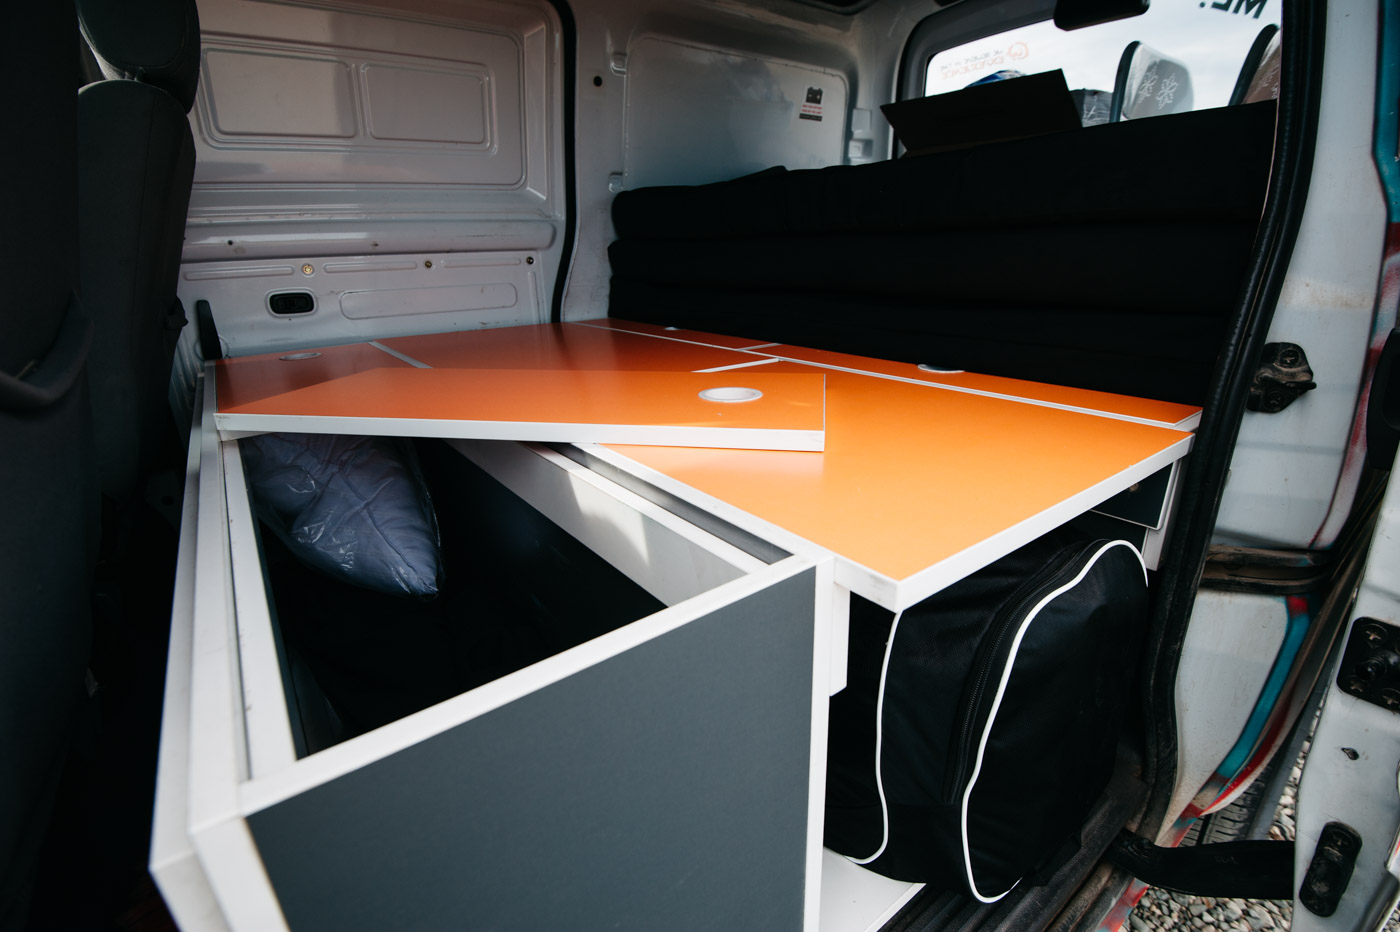 Wicked SouthAmerica Campervan Review Interiour-005